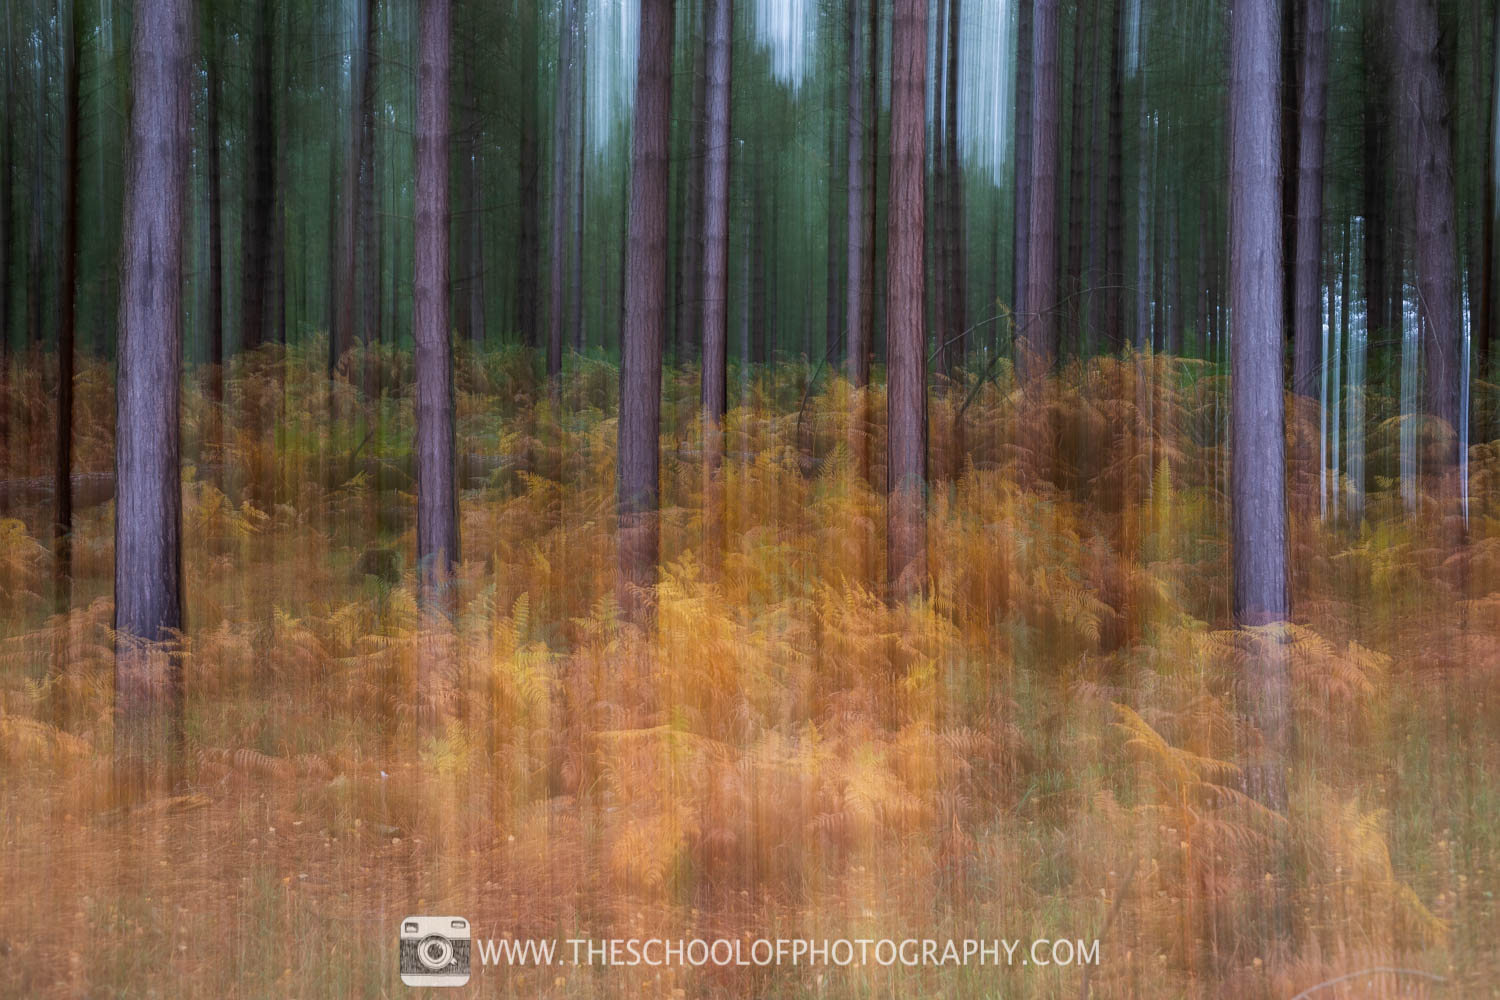 ICM photography with slow pan at 1/2 second shutter speed